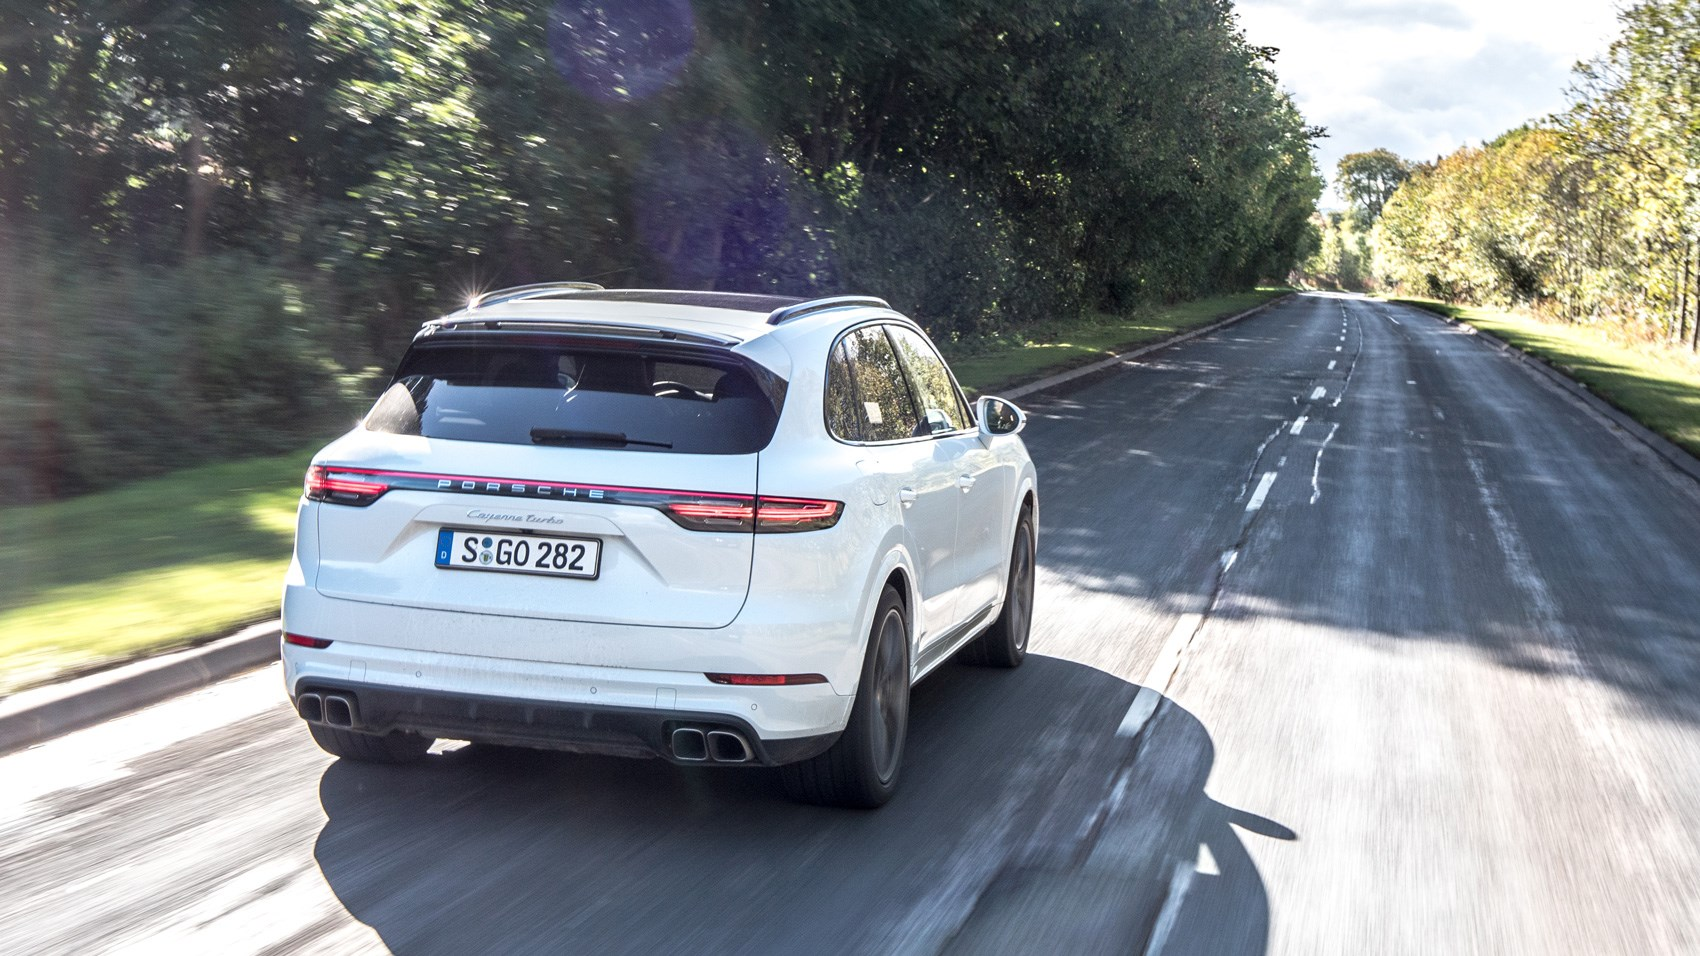 Porsche Cayenne Turbo rear tracking